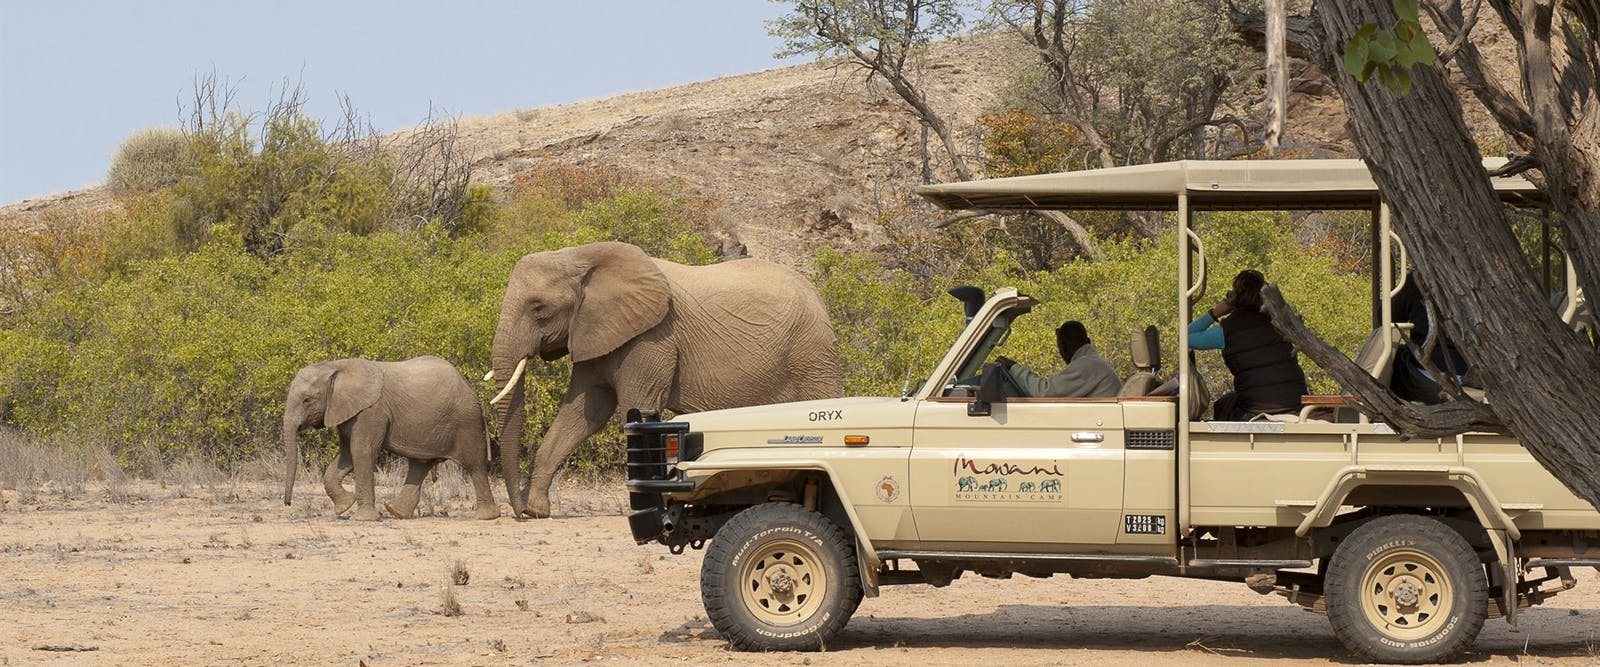 Game Drive at Mowani Mountain Camp